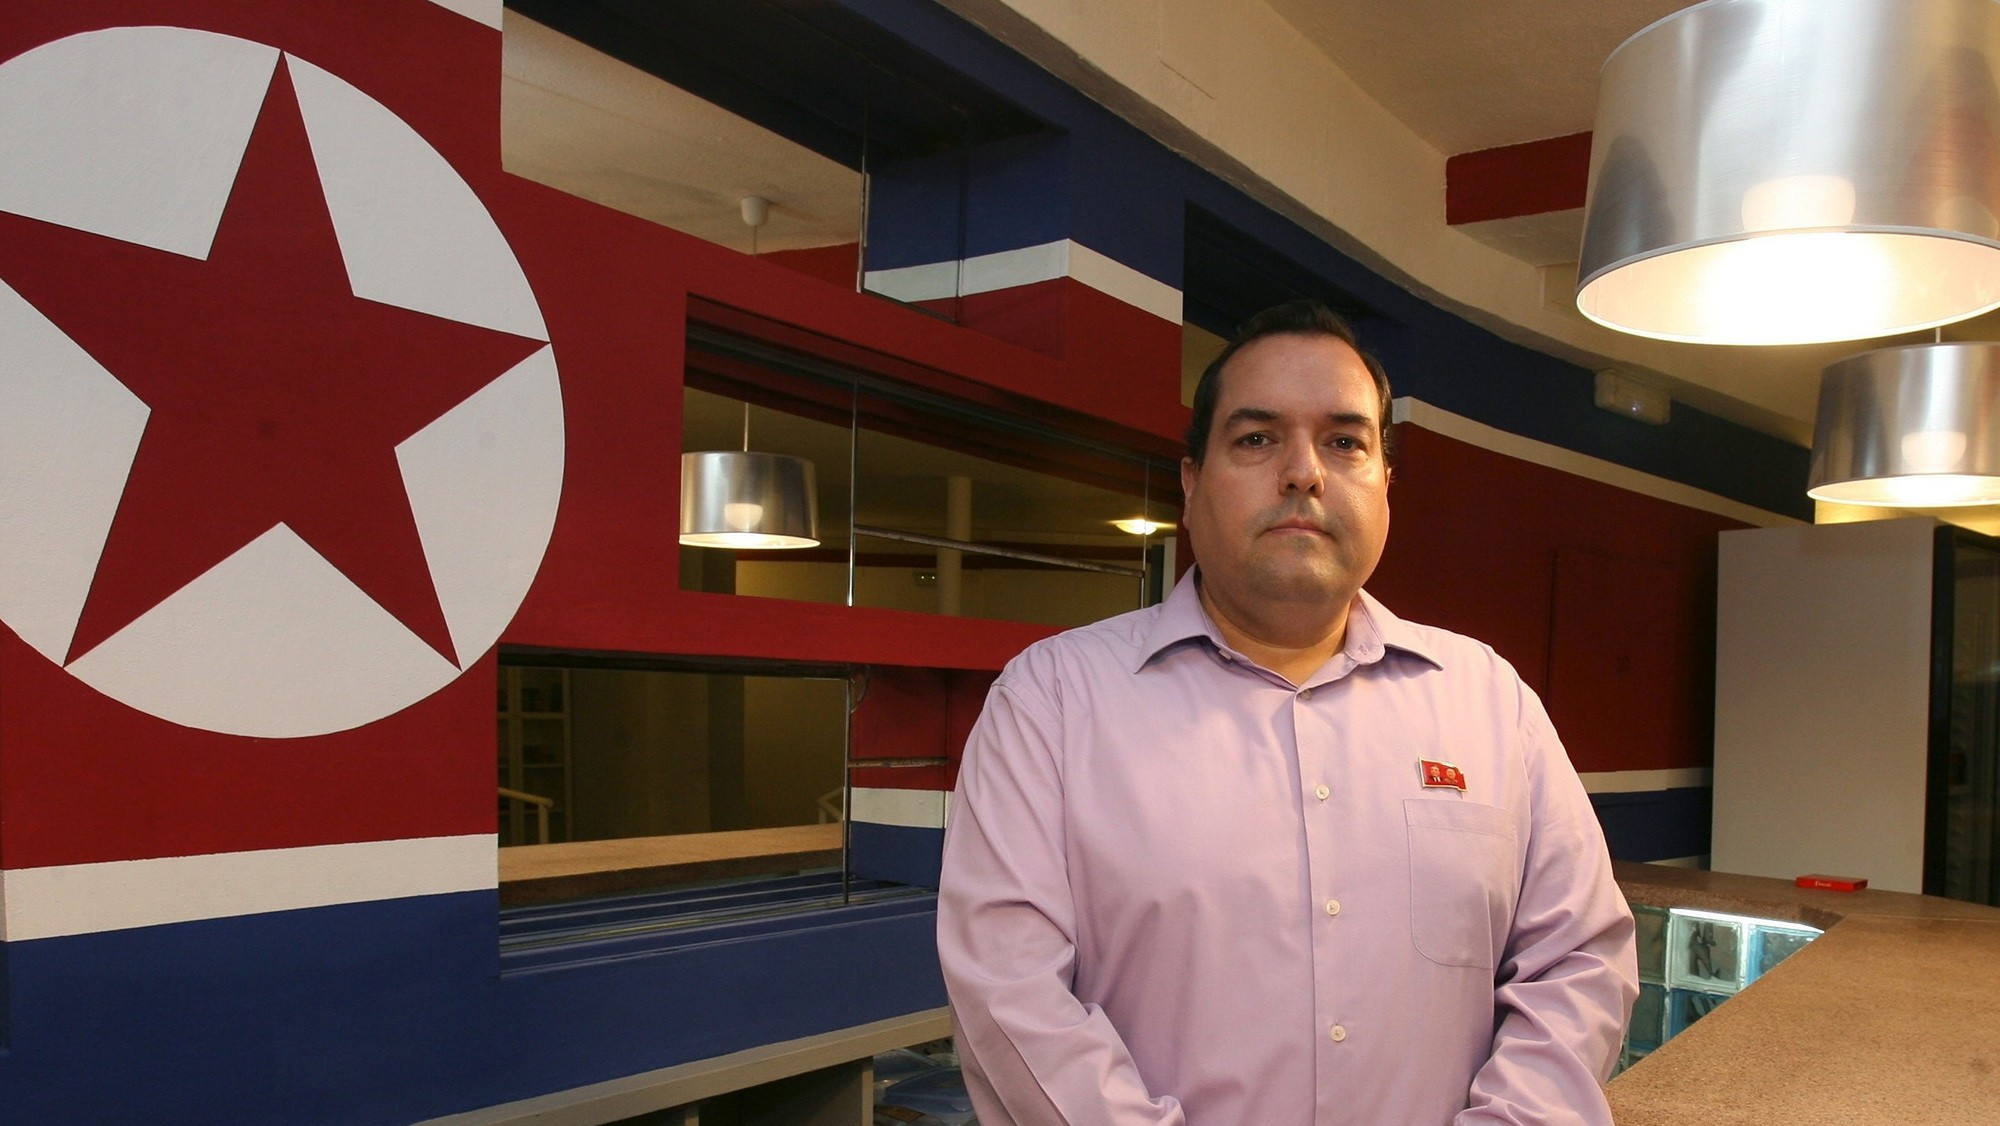 North Korea's Spanish 'Ambassador' Just Got Arrested for Arms Trafficking